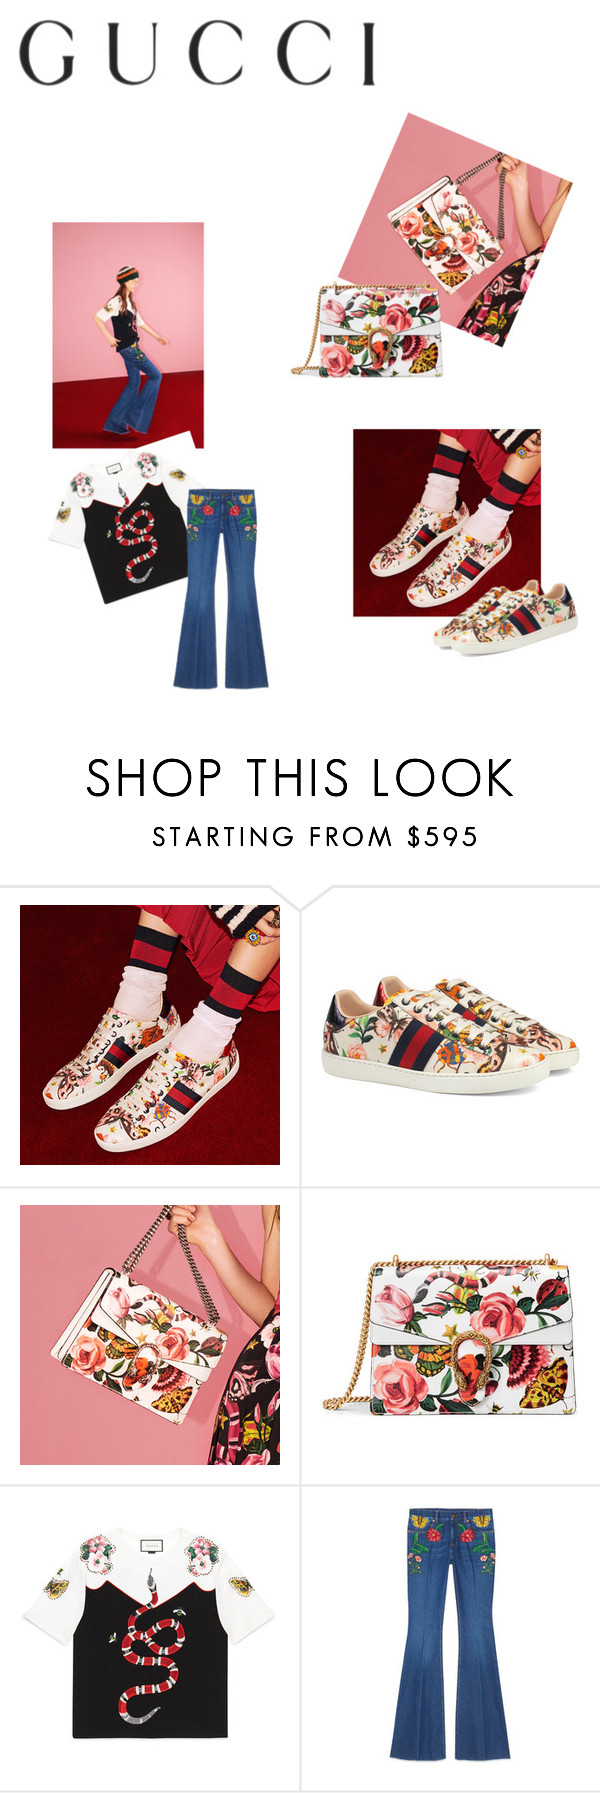 """Presenting the Gucci Garden Exclusive Collection: Contest Entry"" by wqt1 ❤ liked on Polyvore featuring Gucci and gucci"